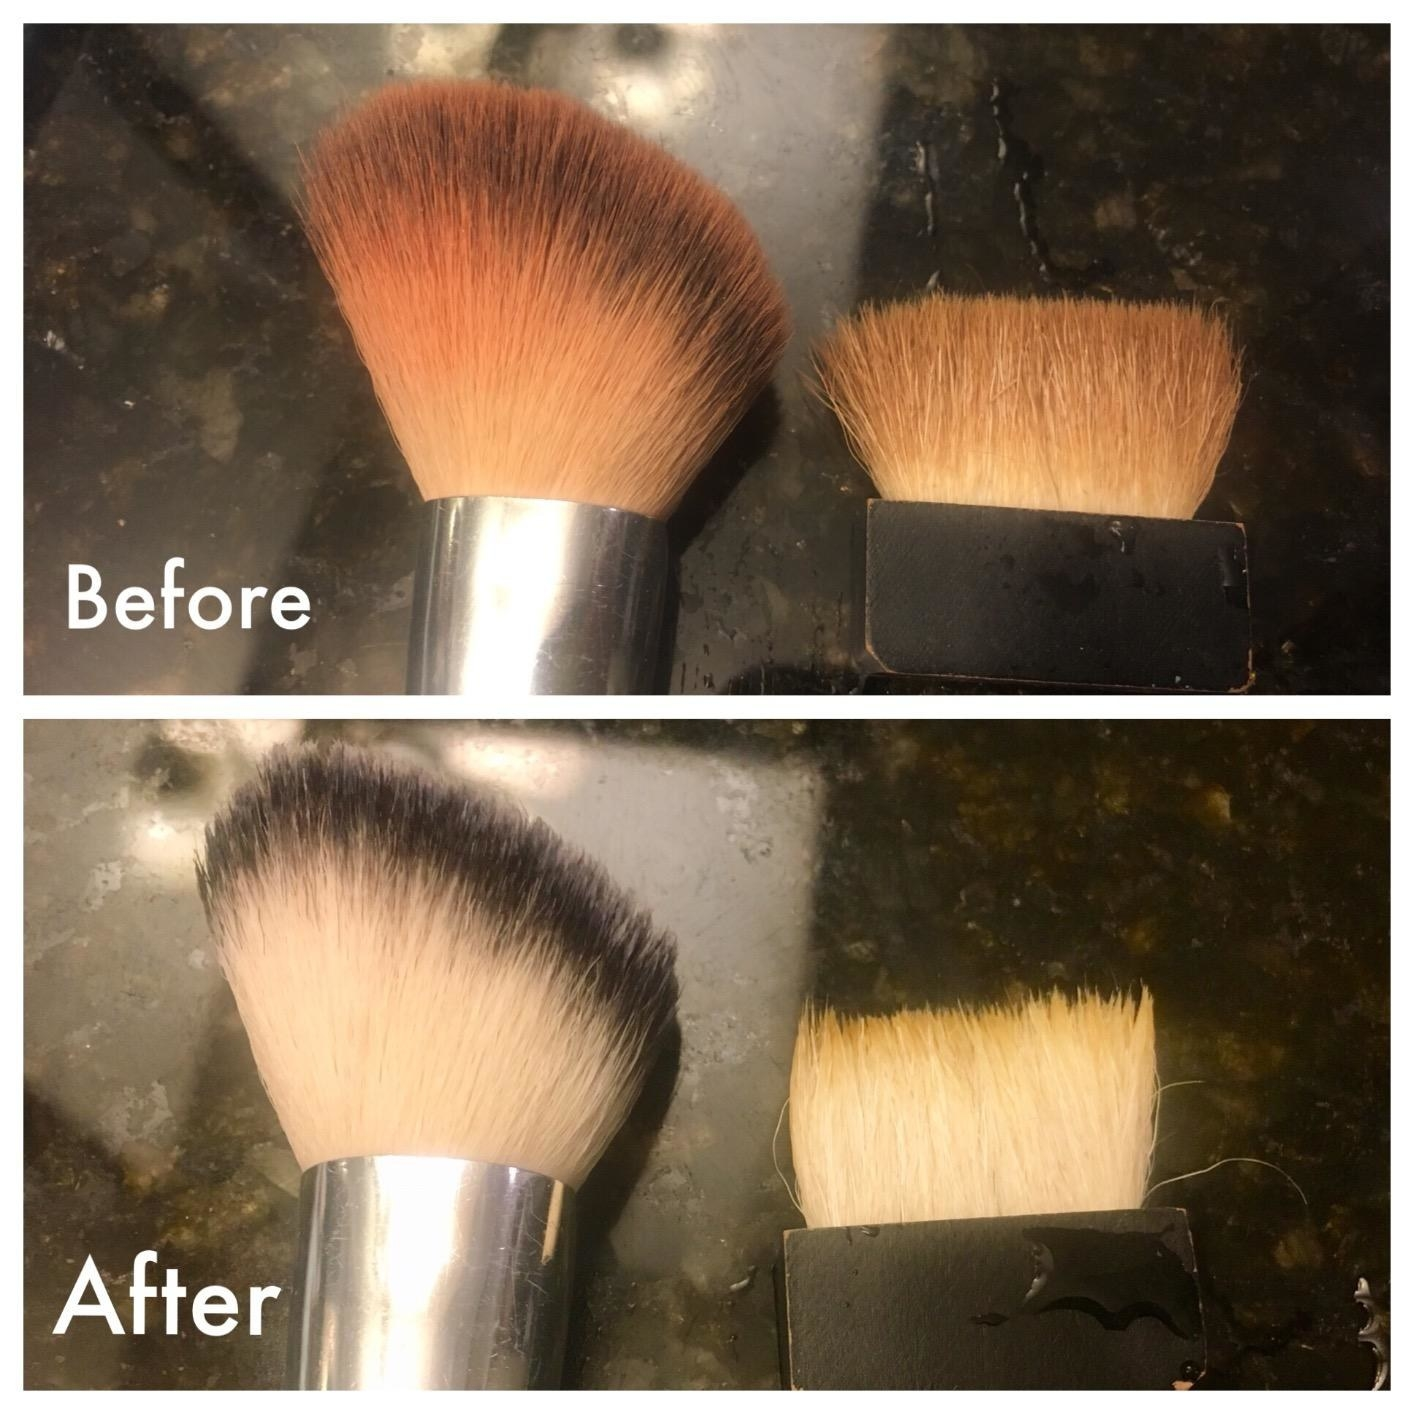 reviewer photo showing their brushes before and after using the cleansing shampoo, revealing brushes that good brand new